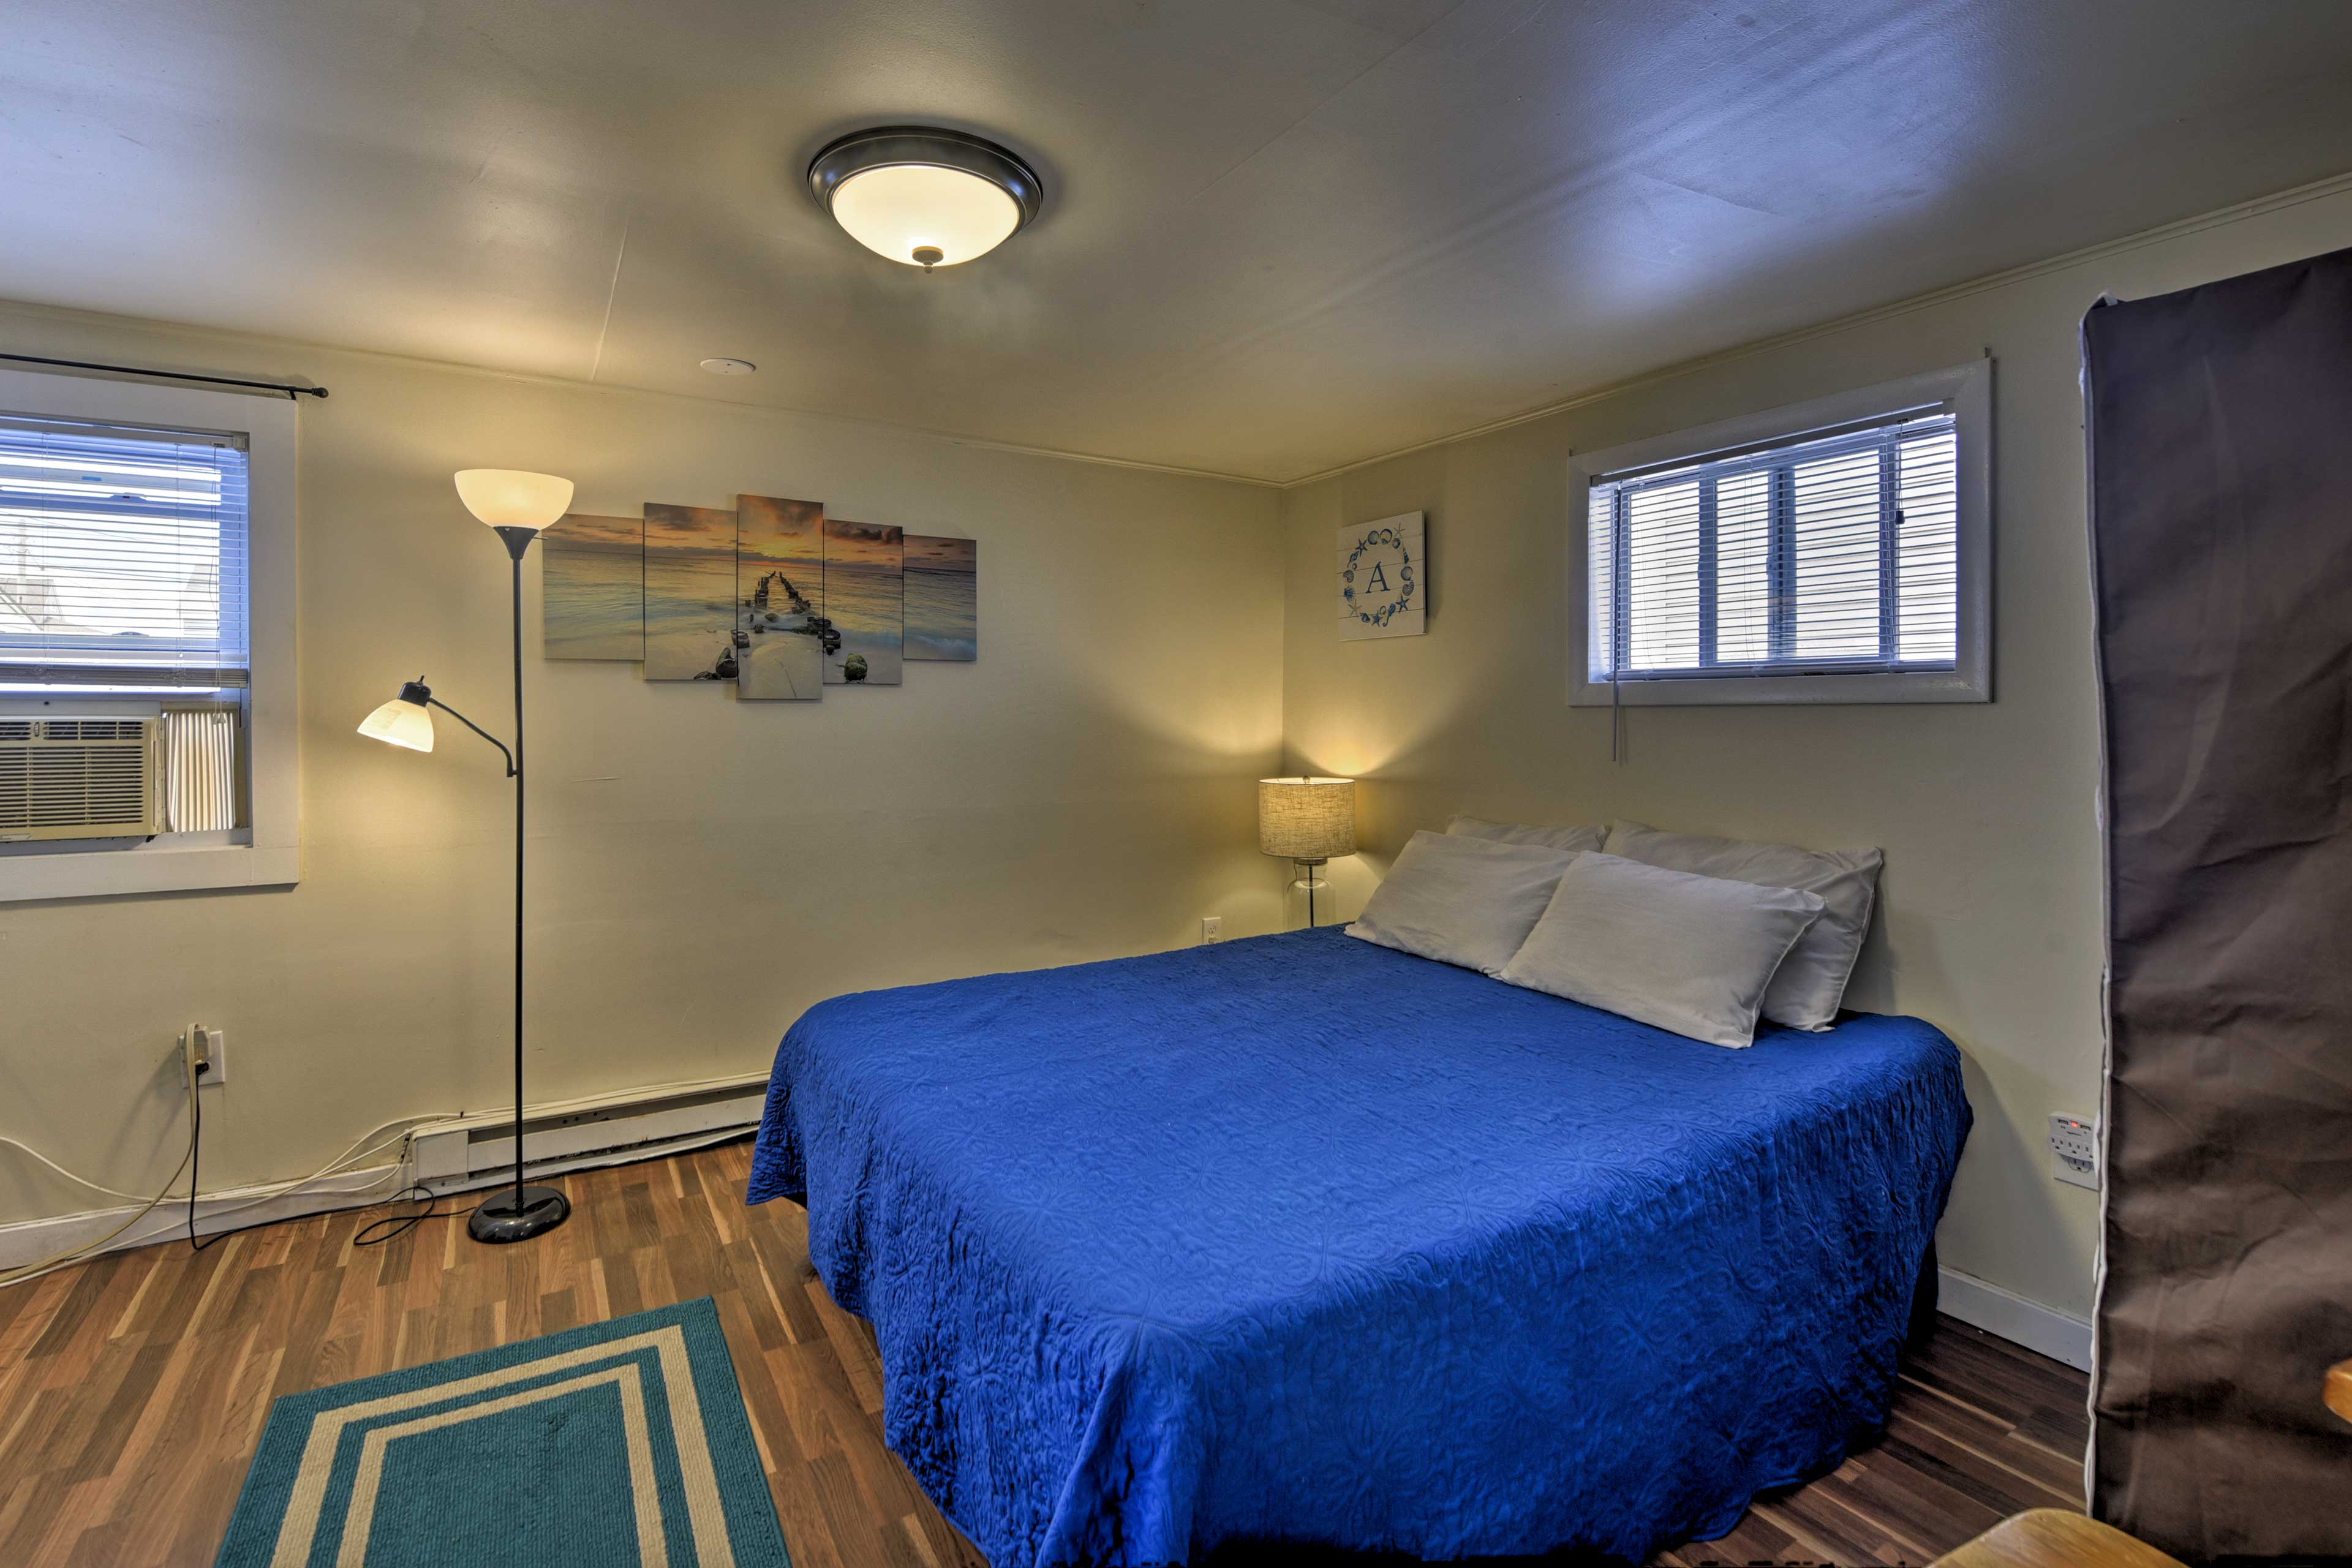 Choose from one of 3 bedrooms for a peaceful slumber.